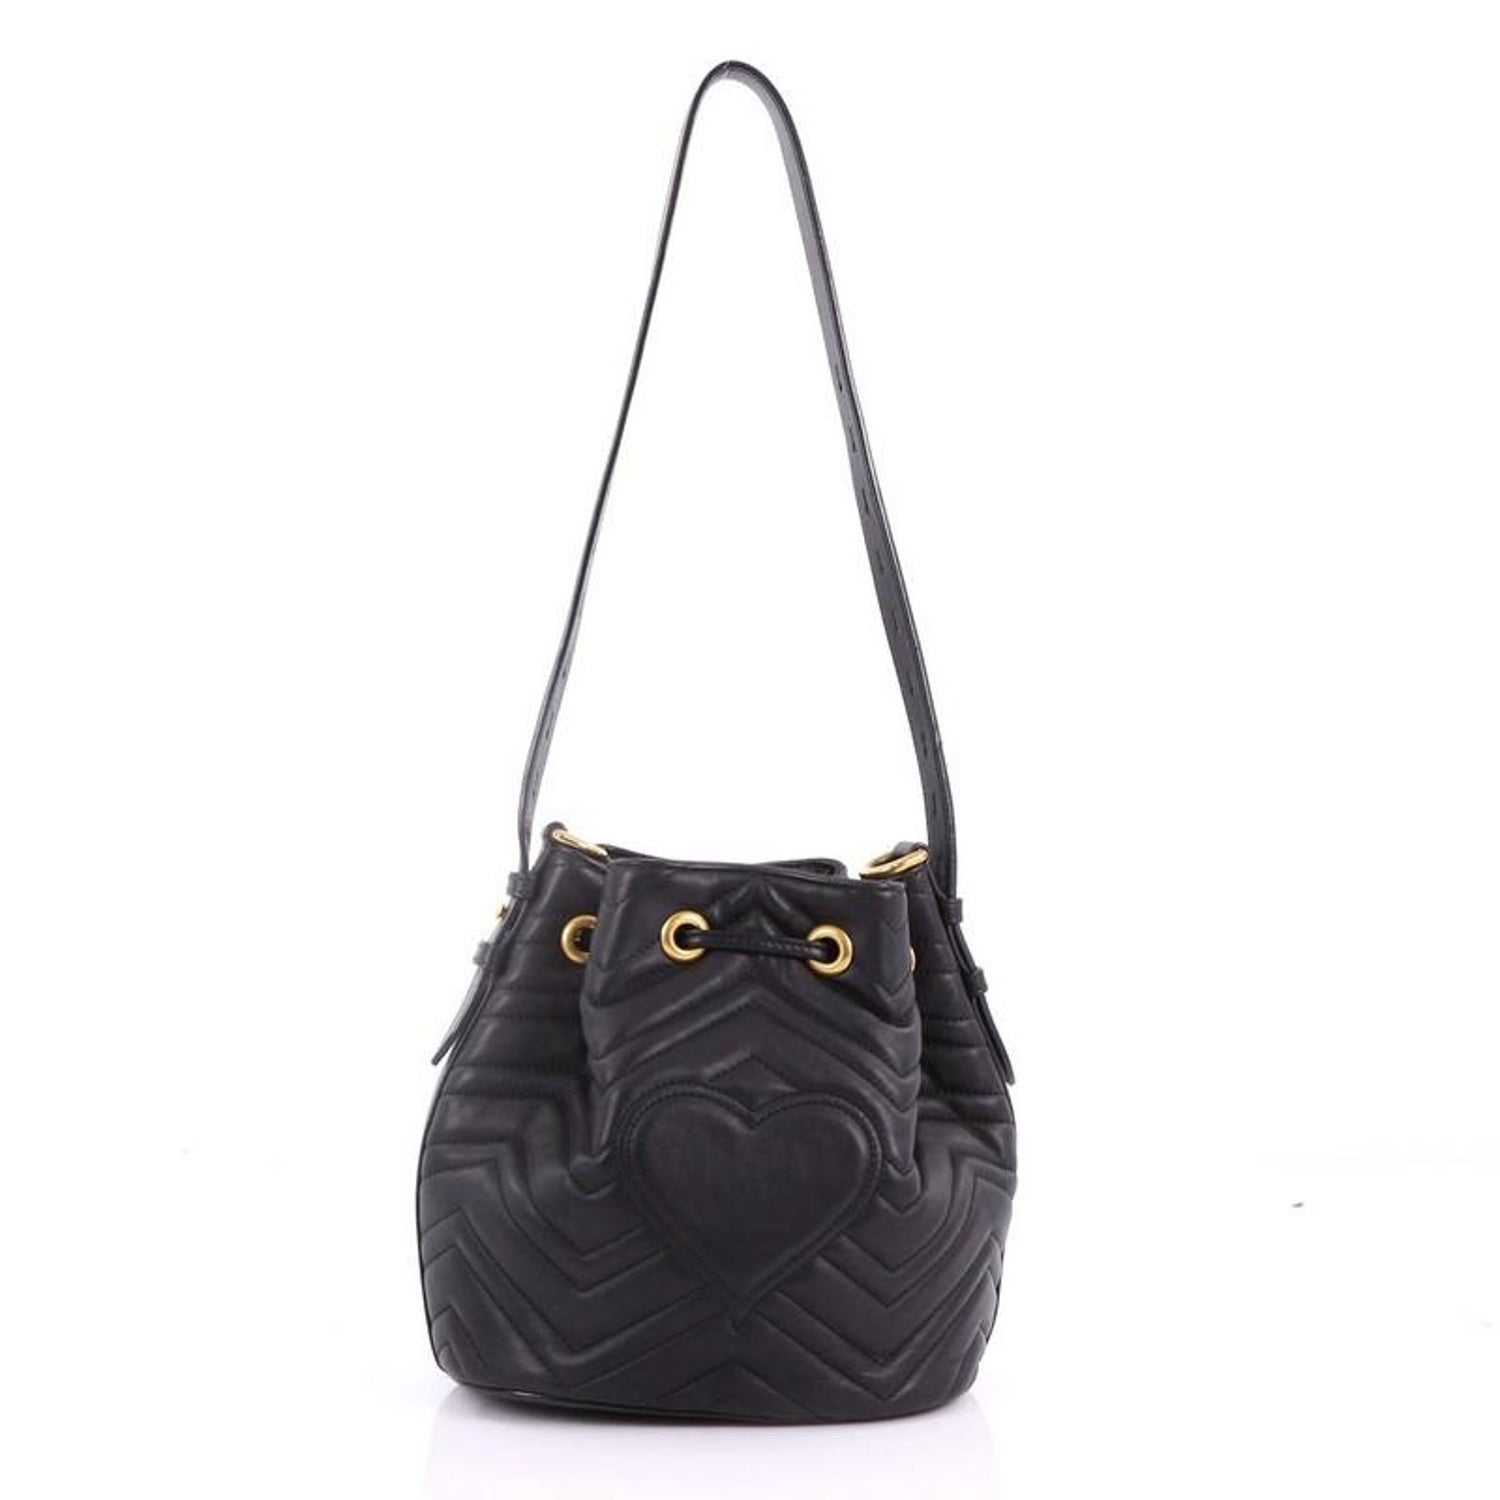 c0386c979 Gucci GG Marmont Bucket Bag Matelasse Leather Small at 1stdibs